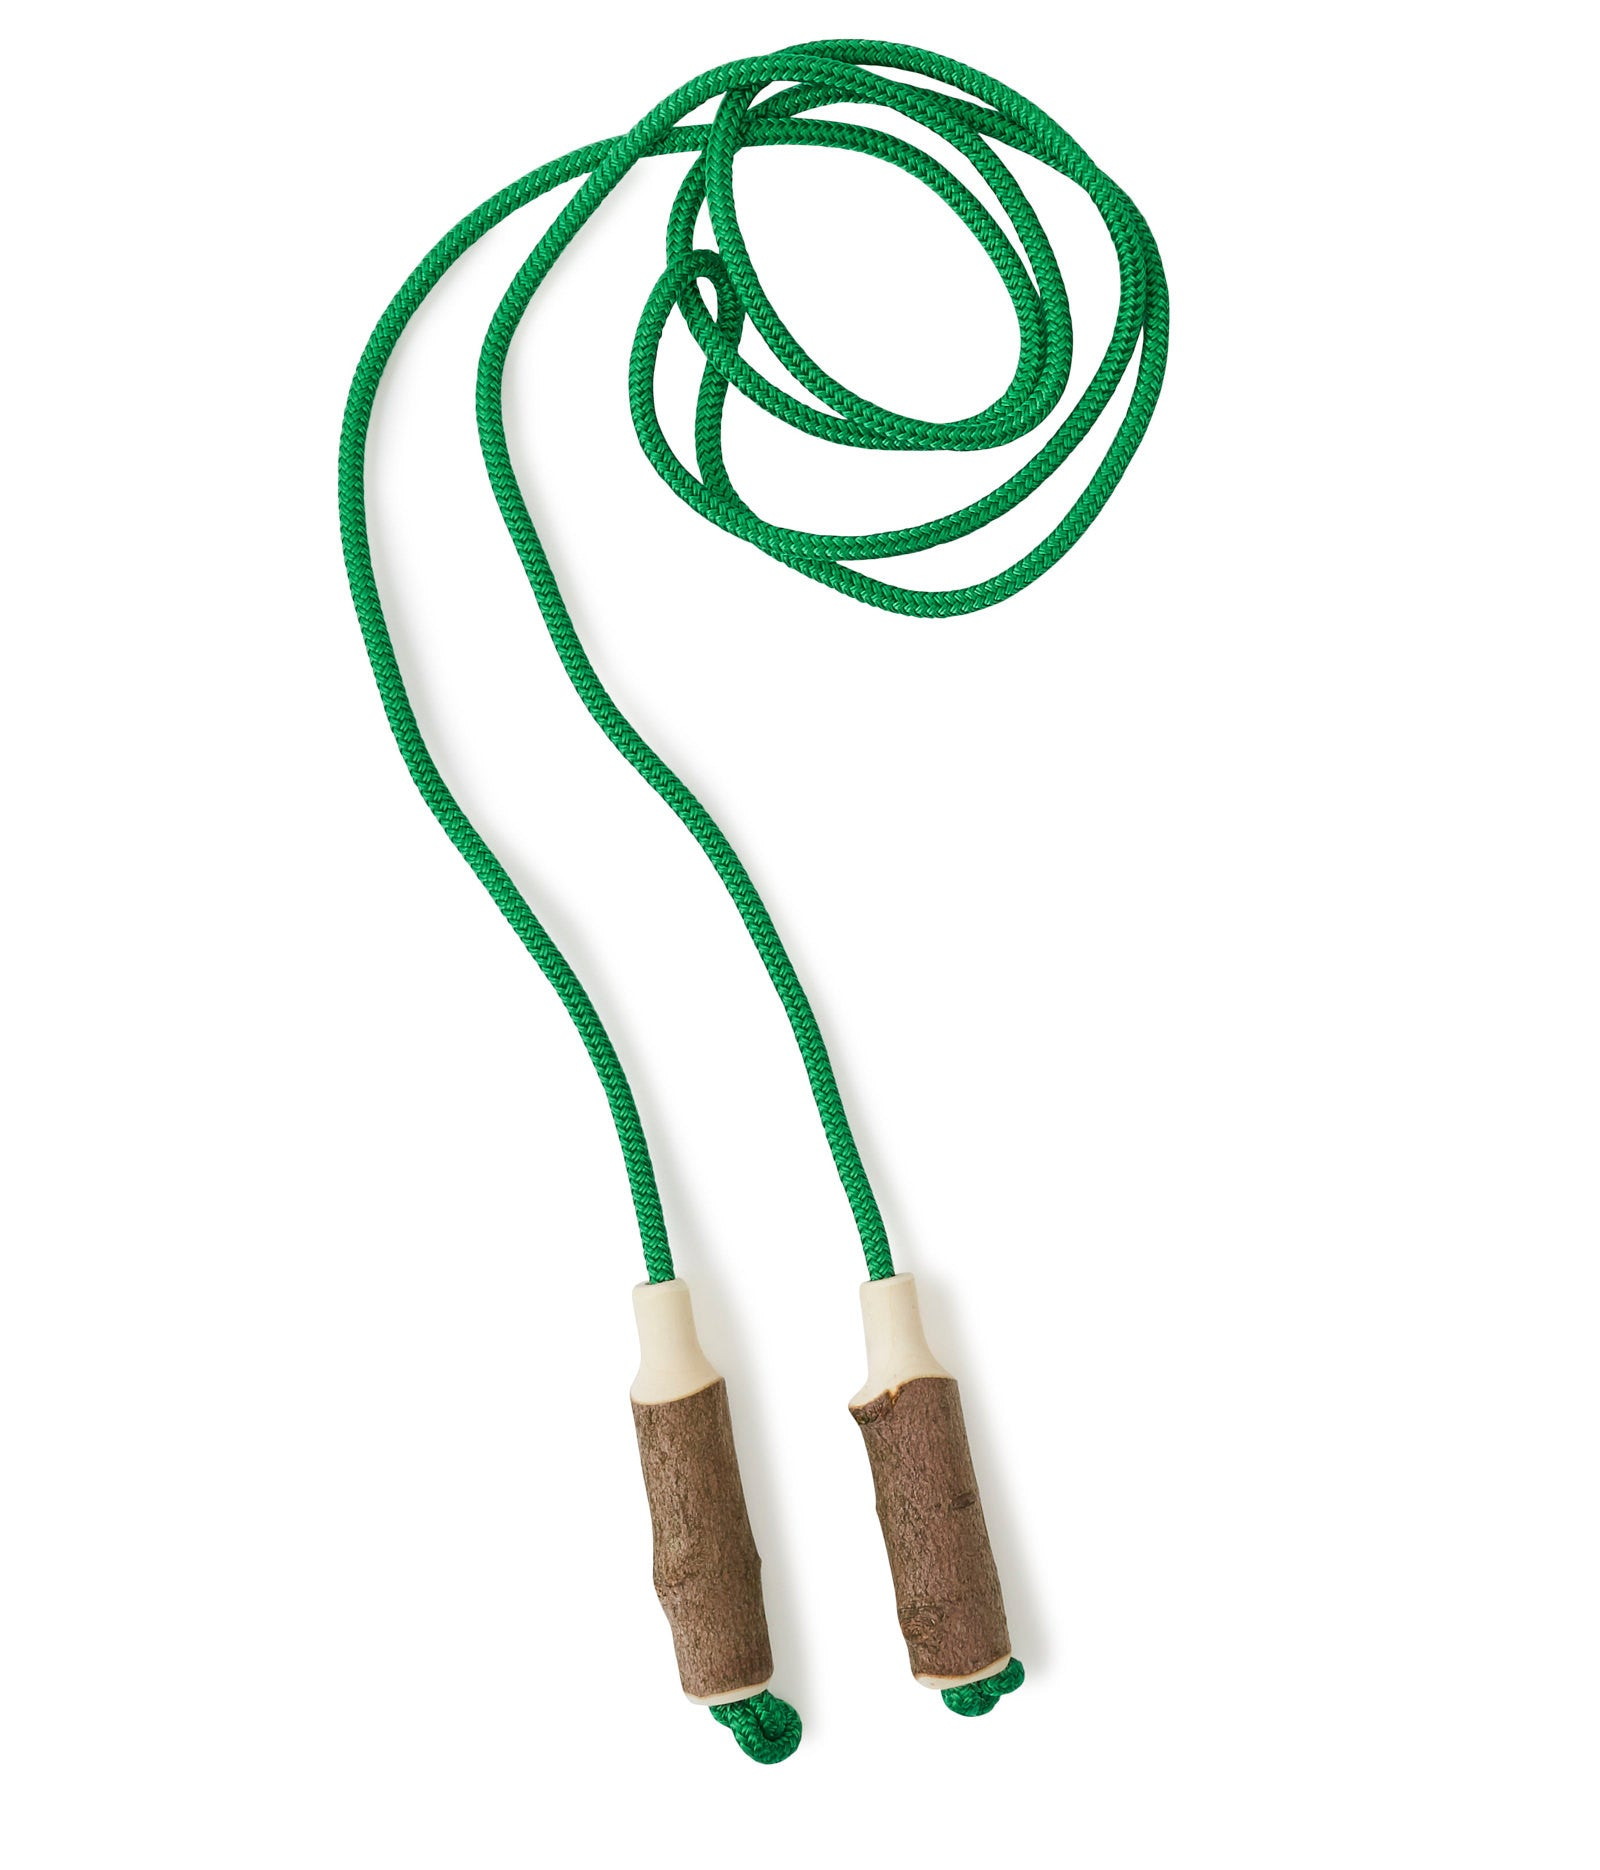 Green Cotton Skipping Rope & Wooden Handles